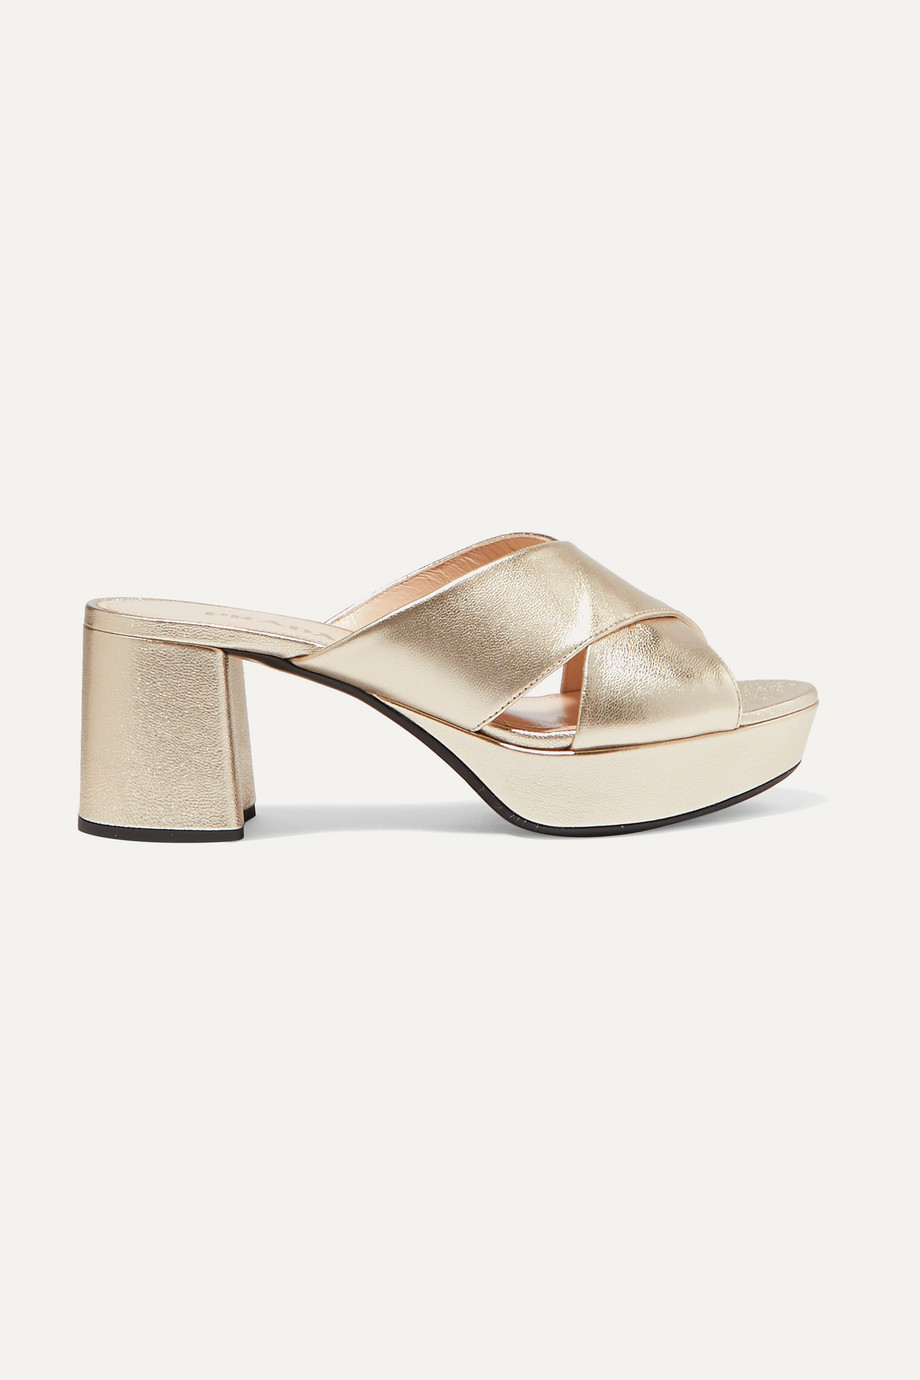 Prada 80 metallic textured-leather platform mules